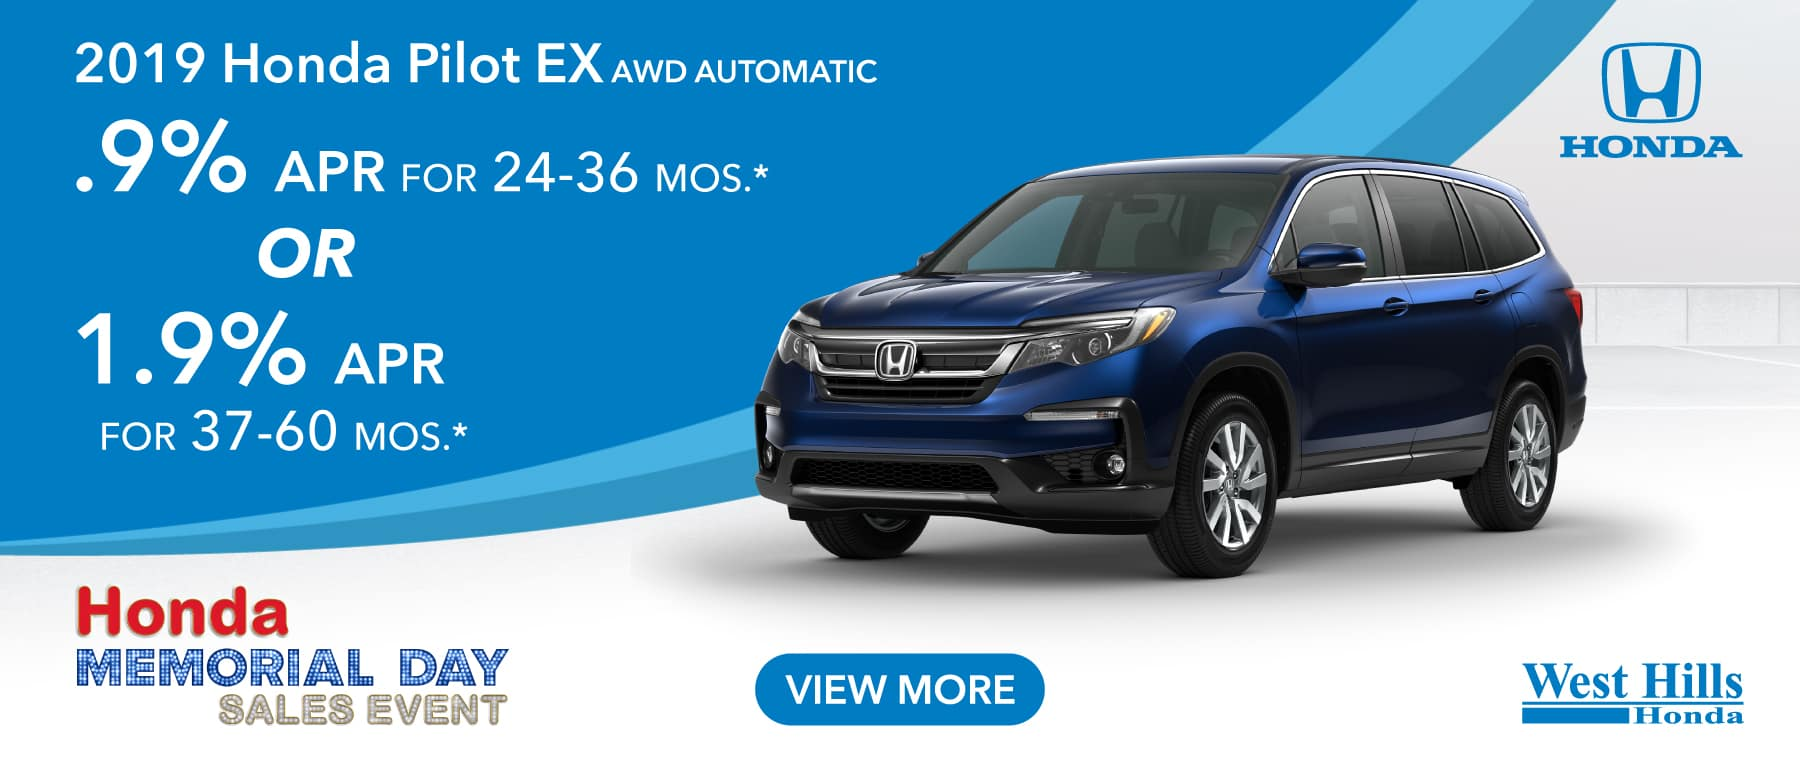 2019 Honda Pilot EX AWD Automatic  .9% for 24-36 mos. * OR 1.9% for 37-60 mos. *   * Valid on 2019 Honda Pilot EX AWD Automatic. .9% for 24-36 mos. OR 1.9% for 37-60 mos. Valid on VIN: 5FNYF6H33KB032626, 5FNYF6H3XKB036124. MSRP starting at $37,225. No Security deposit required. Subject to credit approval. 36 monthly payments required. Residency restrictions apply. Not all buyers will qualify. Down payment and monthly payment may vary. Excludes state and local taxes, tags, registration and title, insurance and dealer charges. A negotiable dealer documentary service fee of up to $150 may be added to the sale price or capitalized cost. Offer expires 7/8/2019.